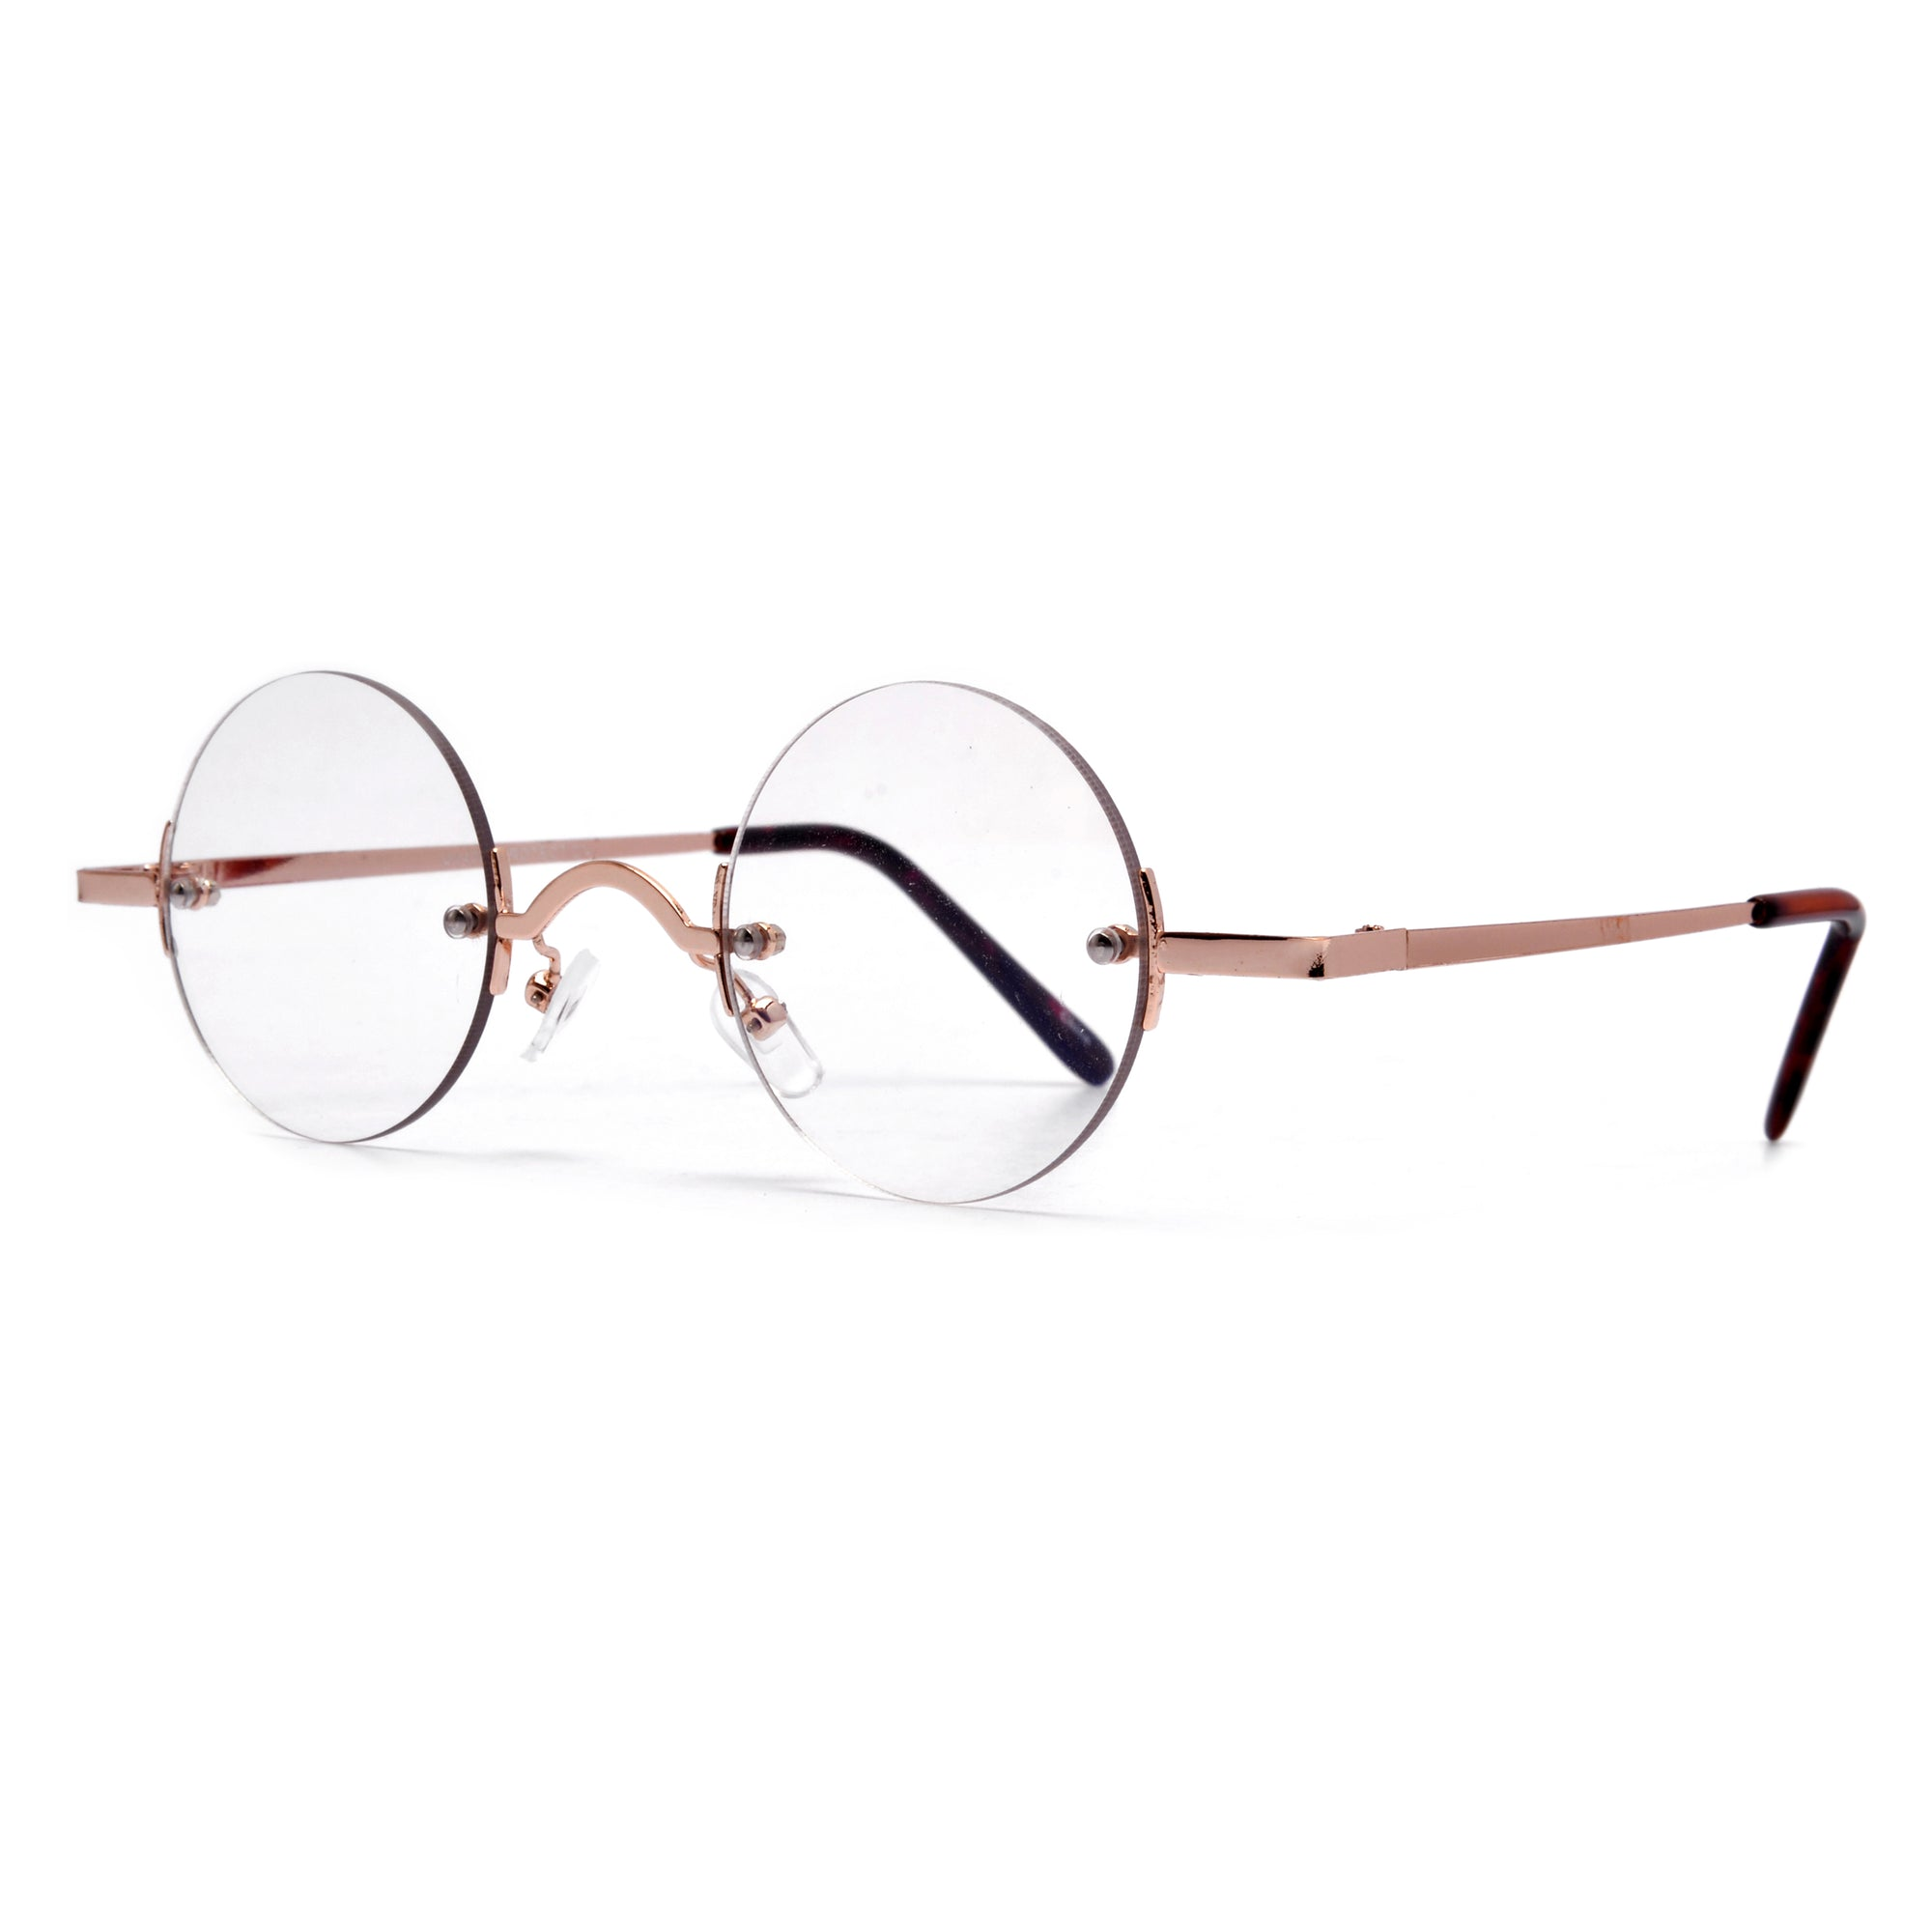 2d8147a3256 Vintage Round Rimless Clear Spectacles - Sunglass Spot